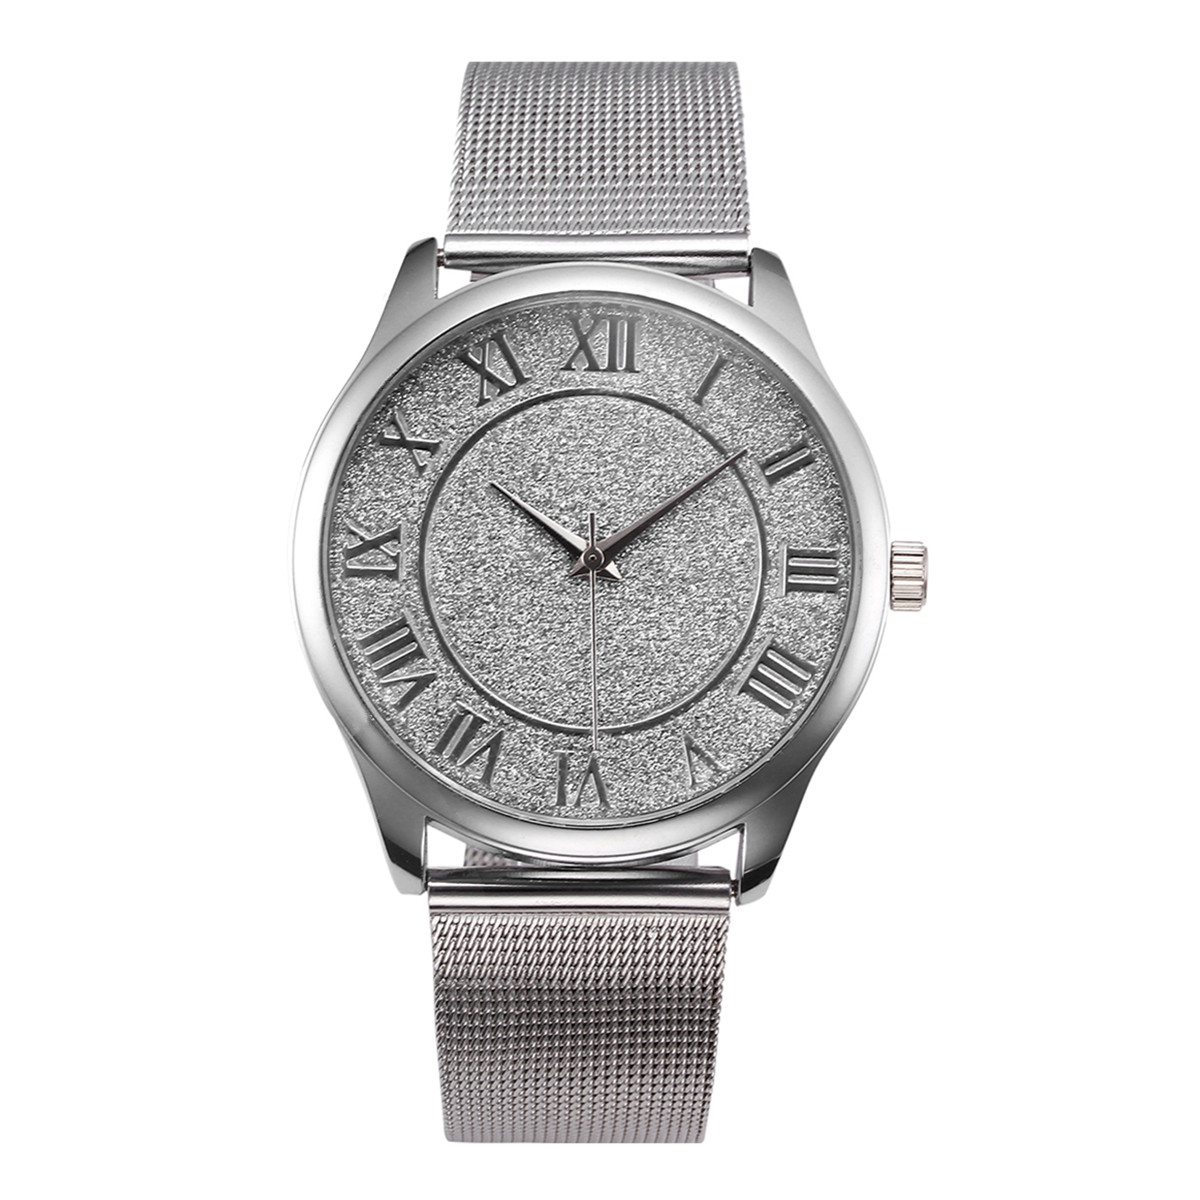 Unisex Fashion simple stylish Luxury brand Finda Watches Women Men Stainless Steel Mesh strap band Quartz-watch thin Dial Clock hanqi laser ipl hair removal machine